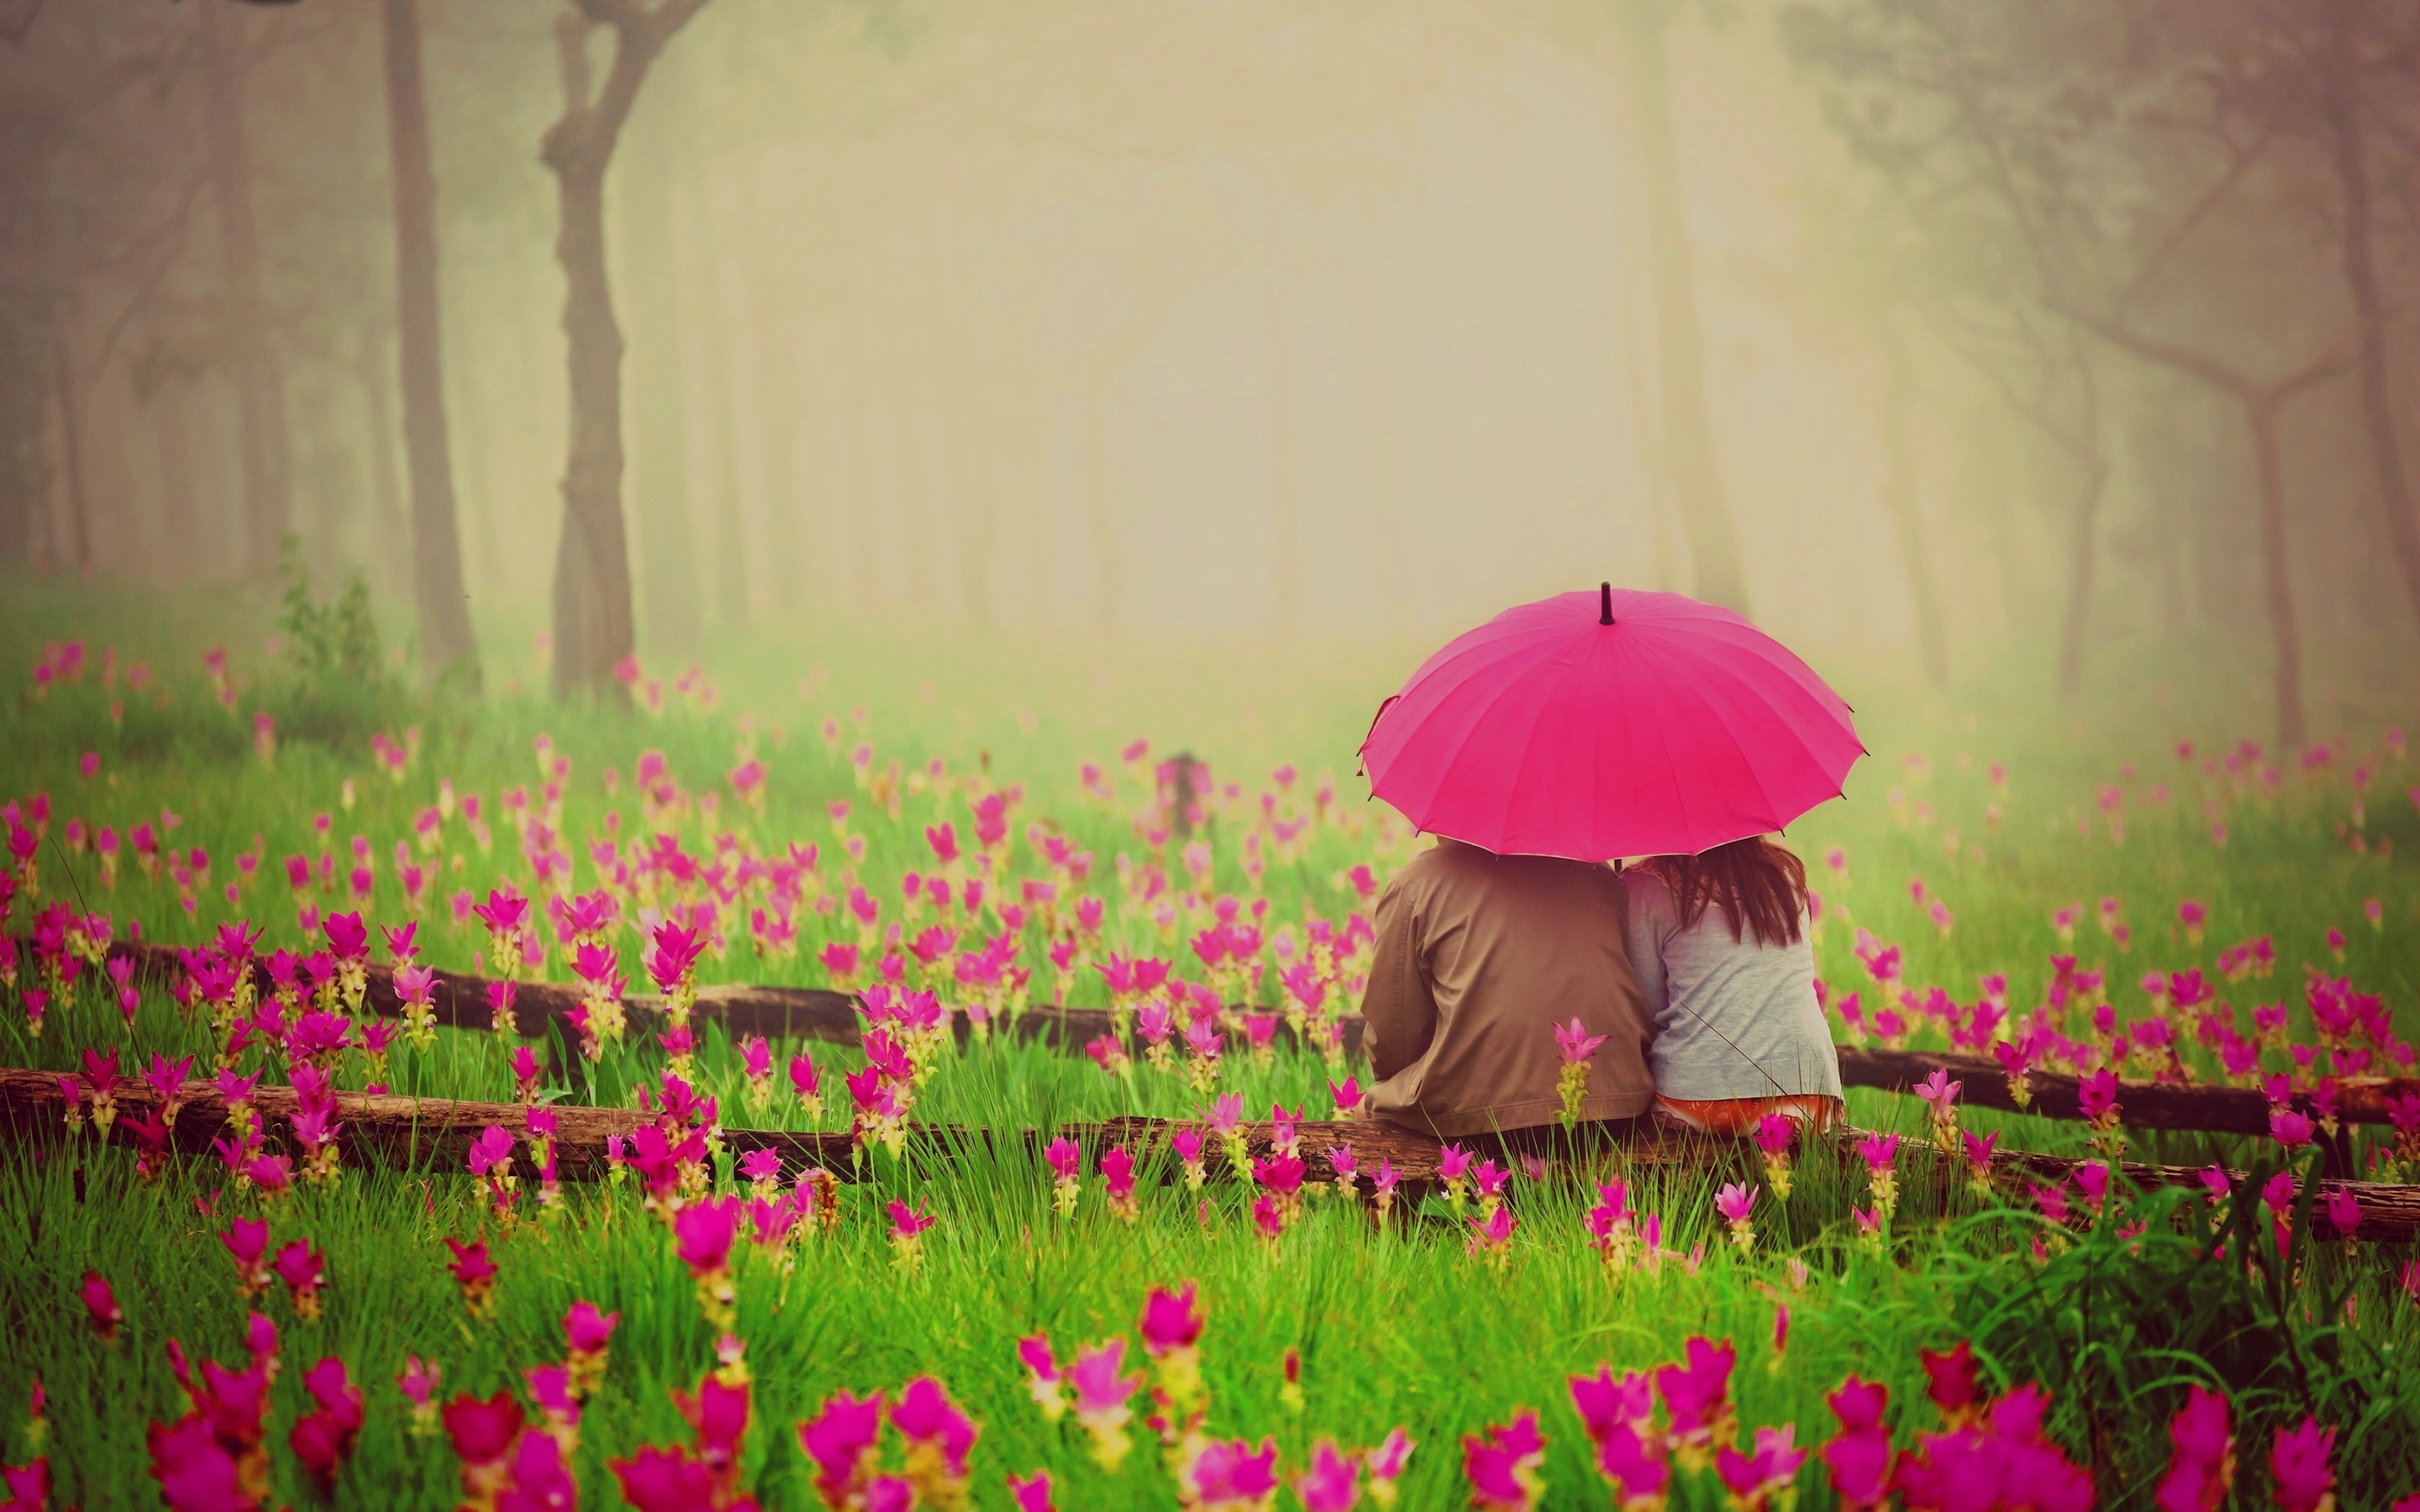 Cover Photos Of Love Couples : romantic-flowers-couple-with-umbrella-hd-desktop-wallpaper